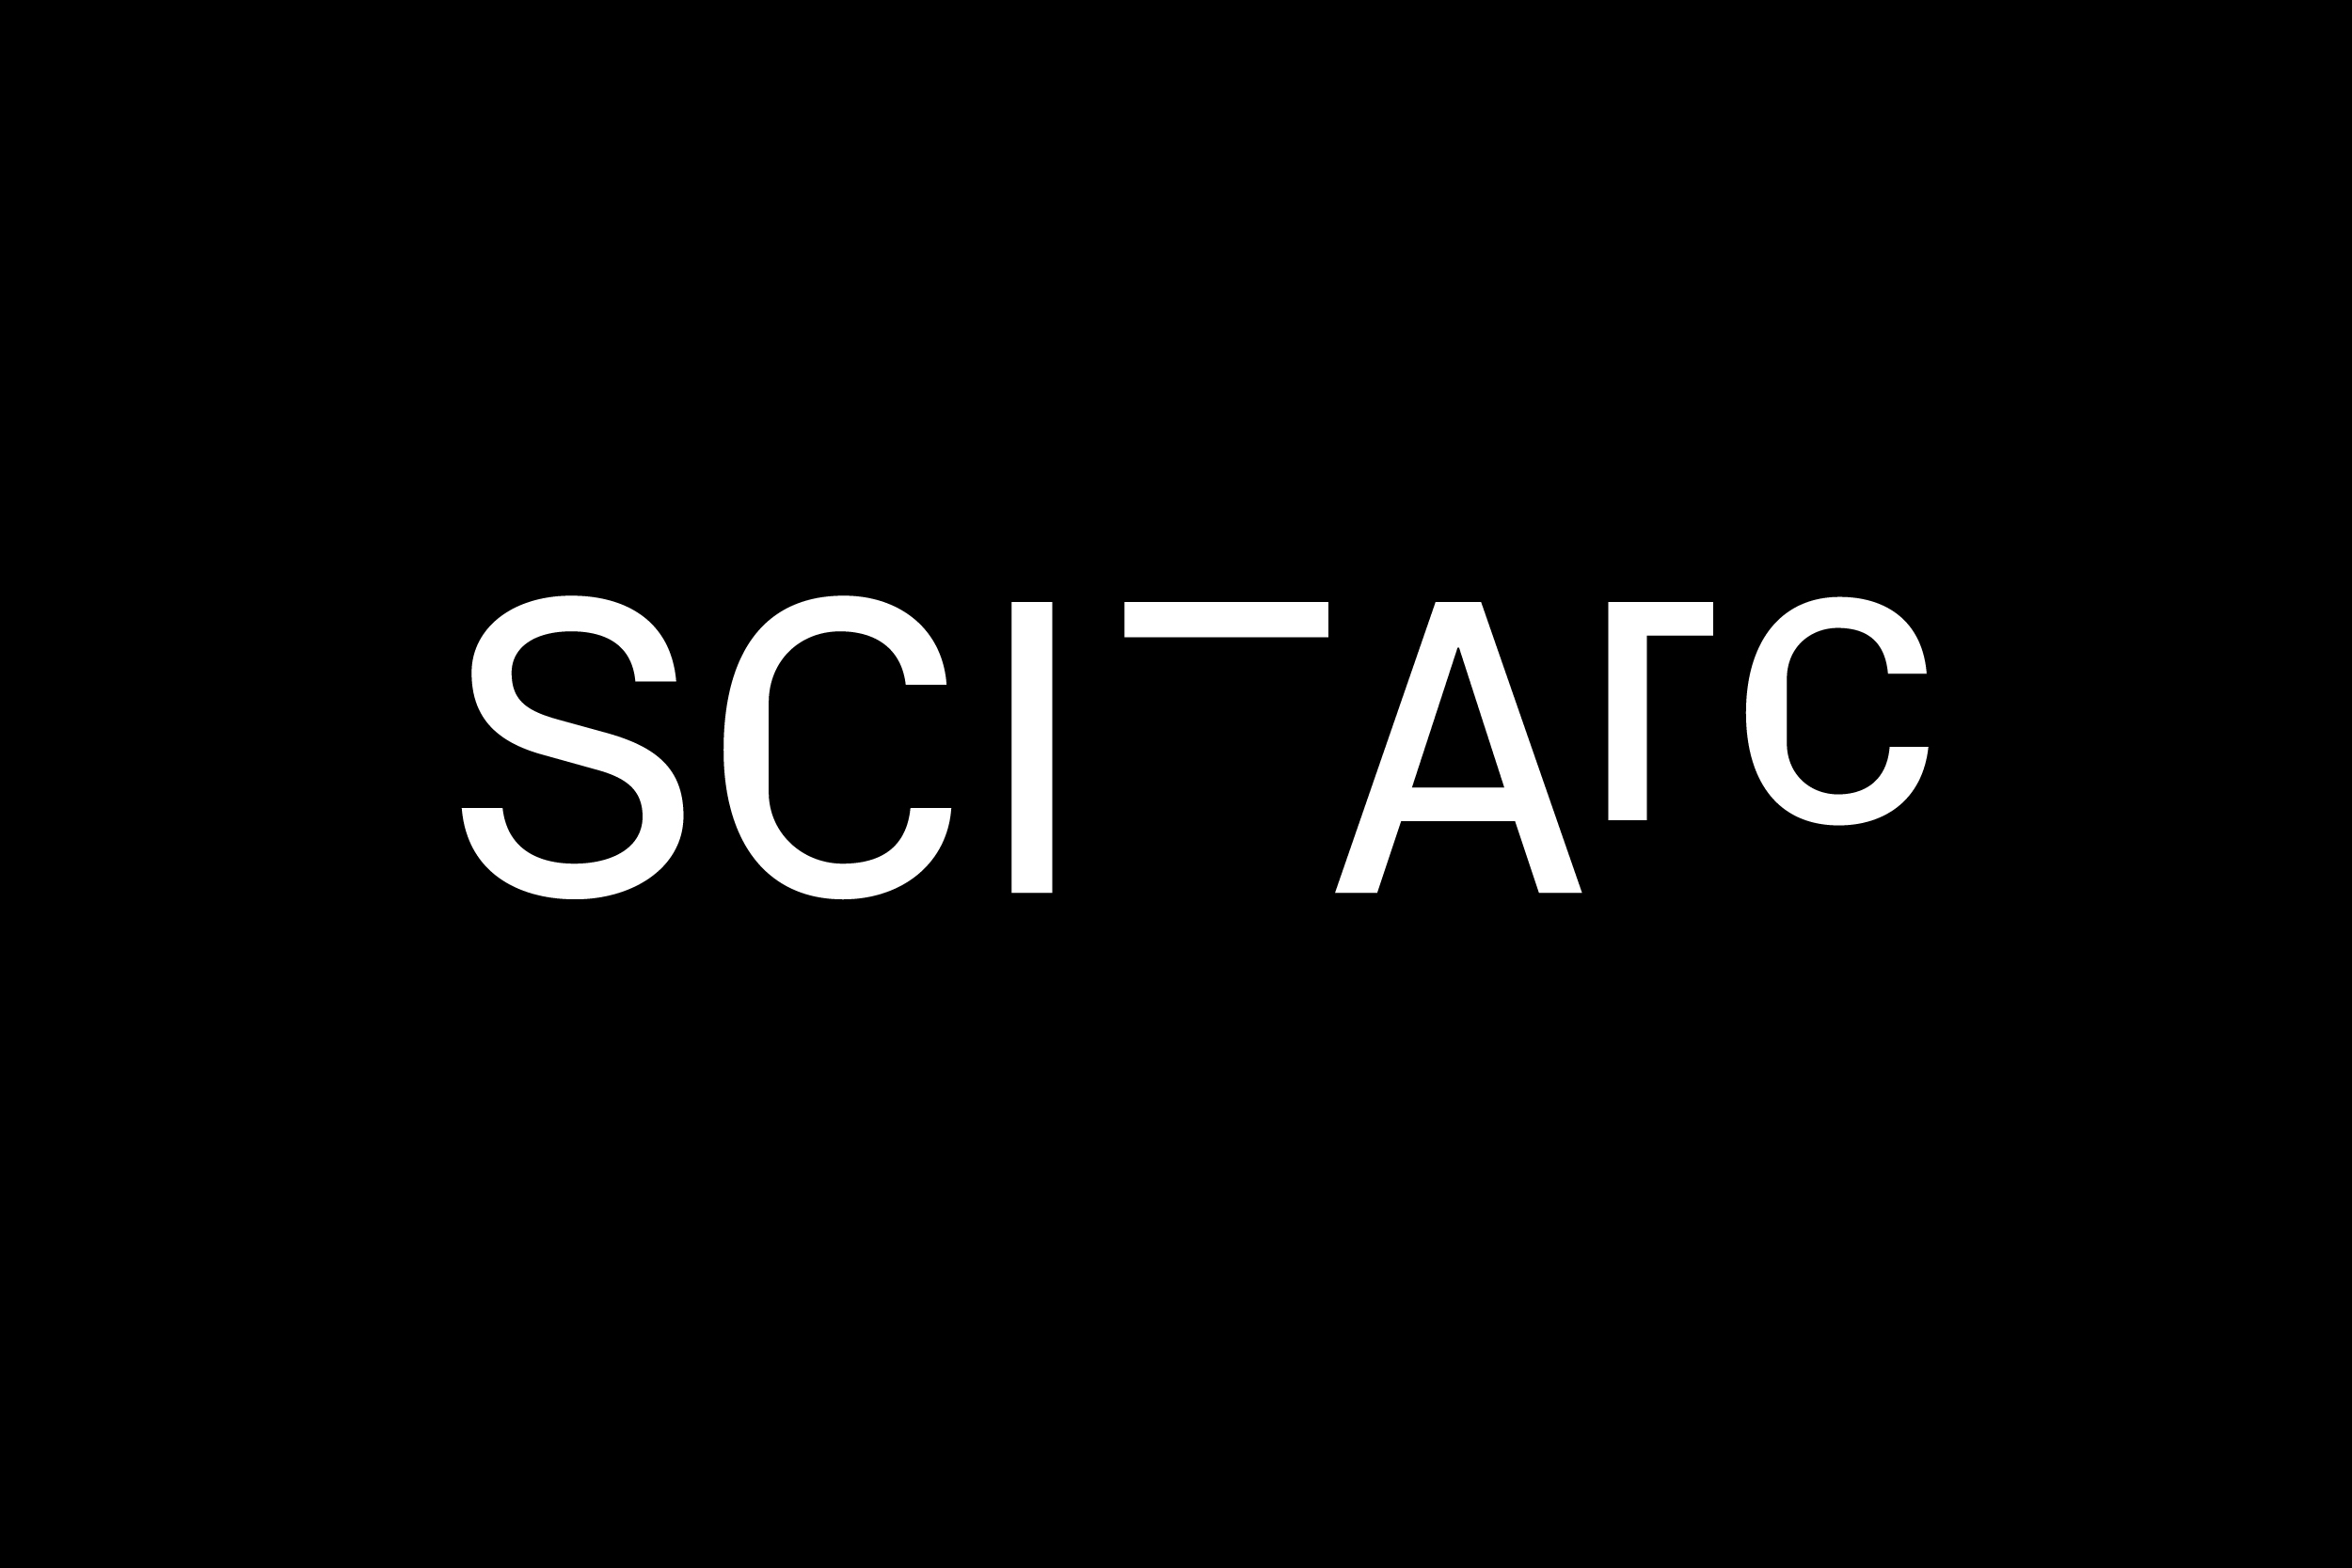 Sciarc logo white on black